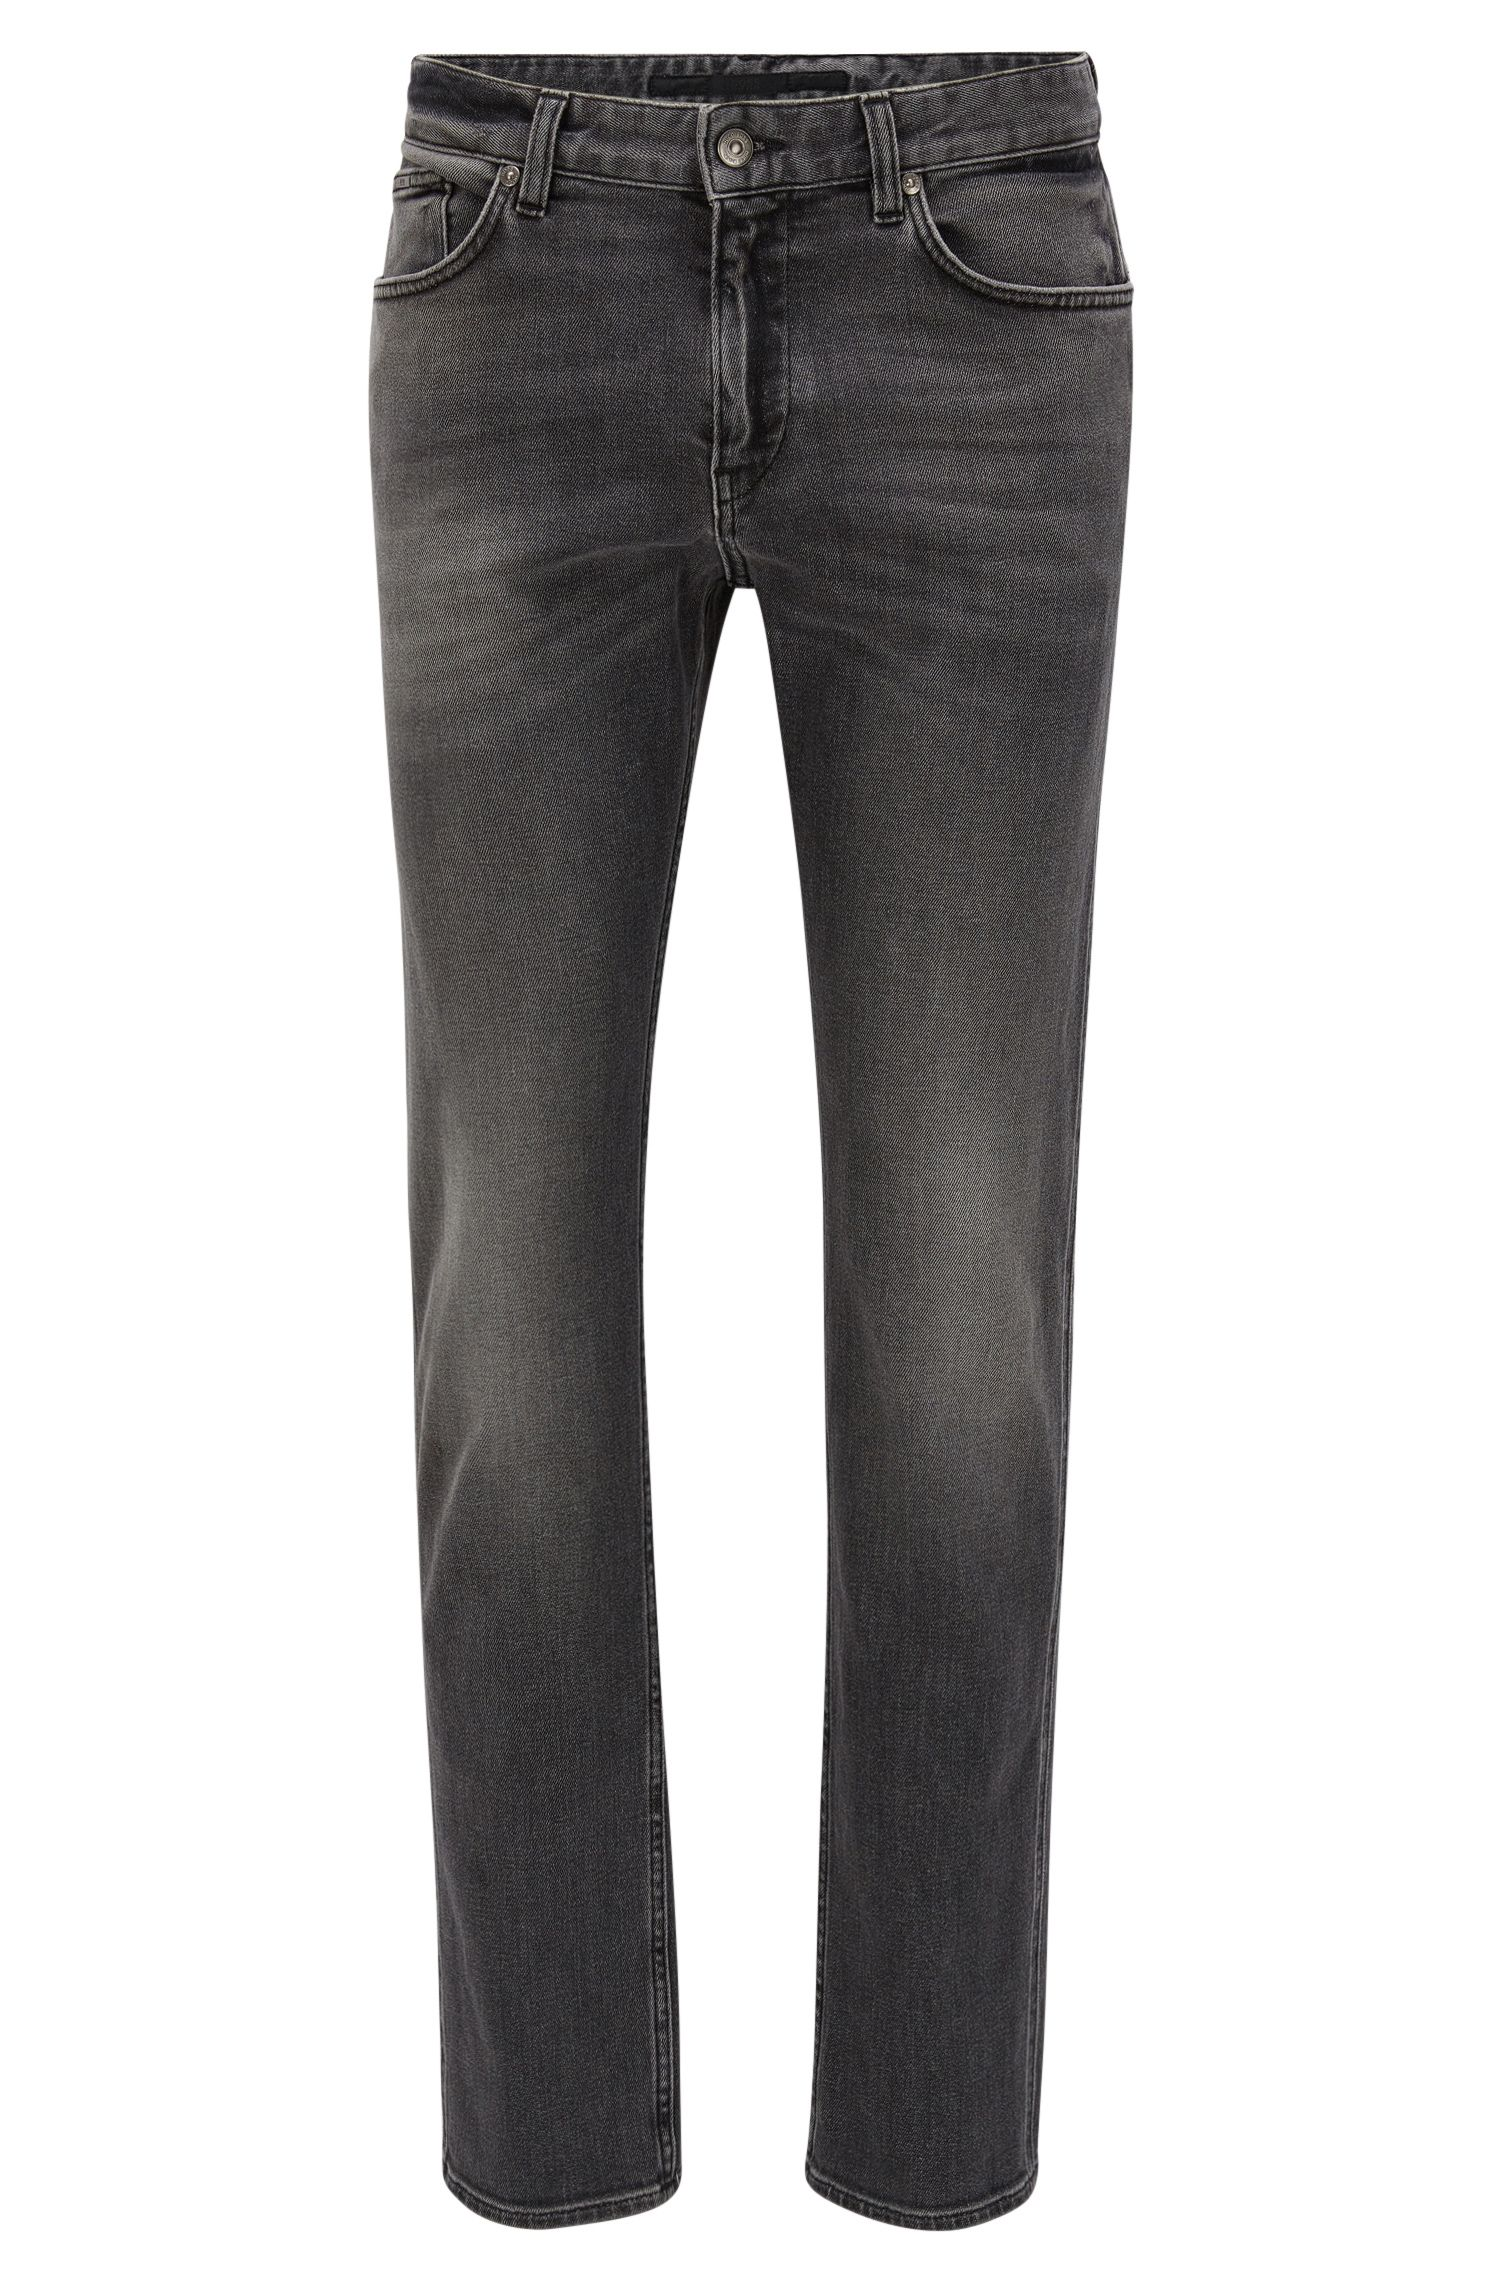 Grey slim-fit jeans in mid-washed stretch denim